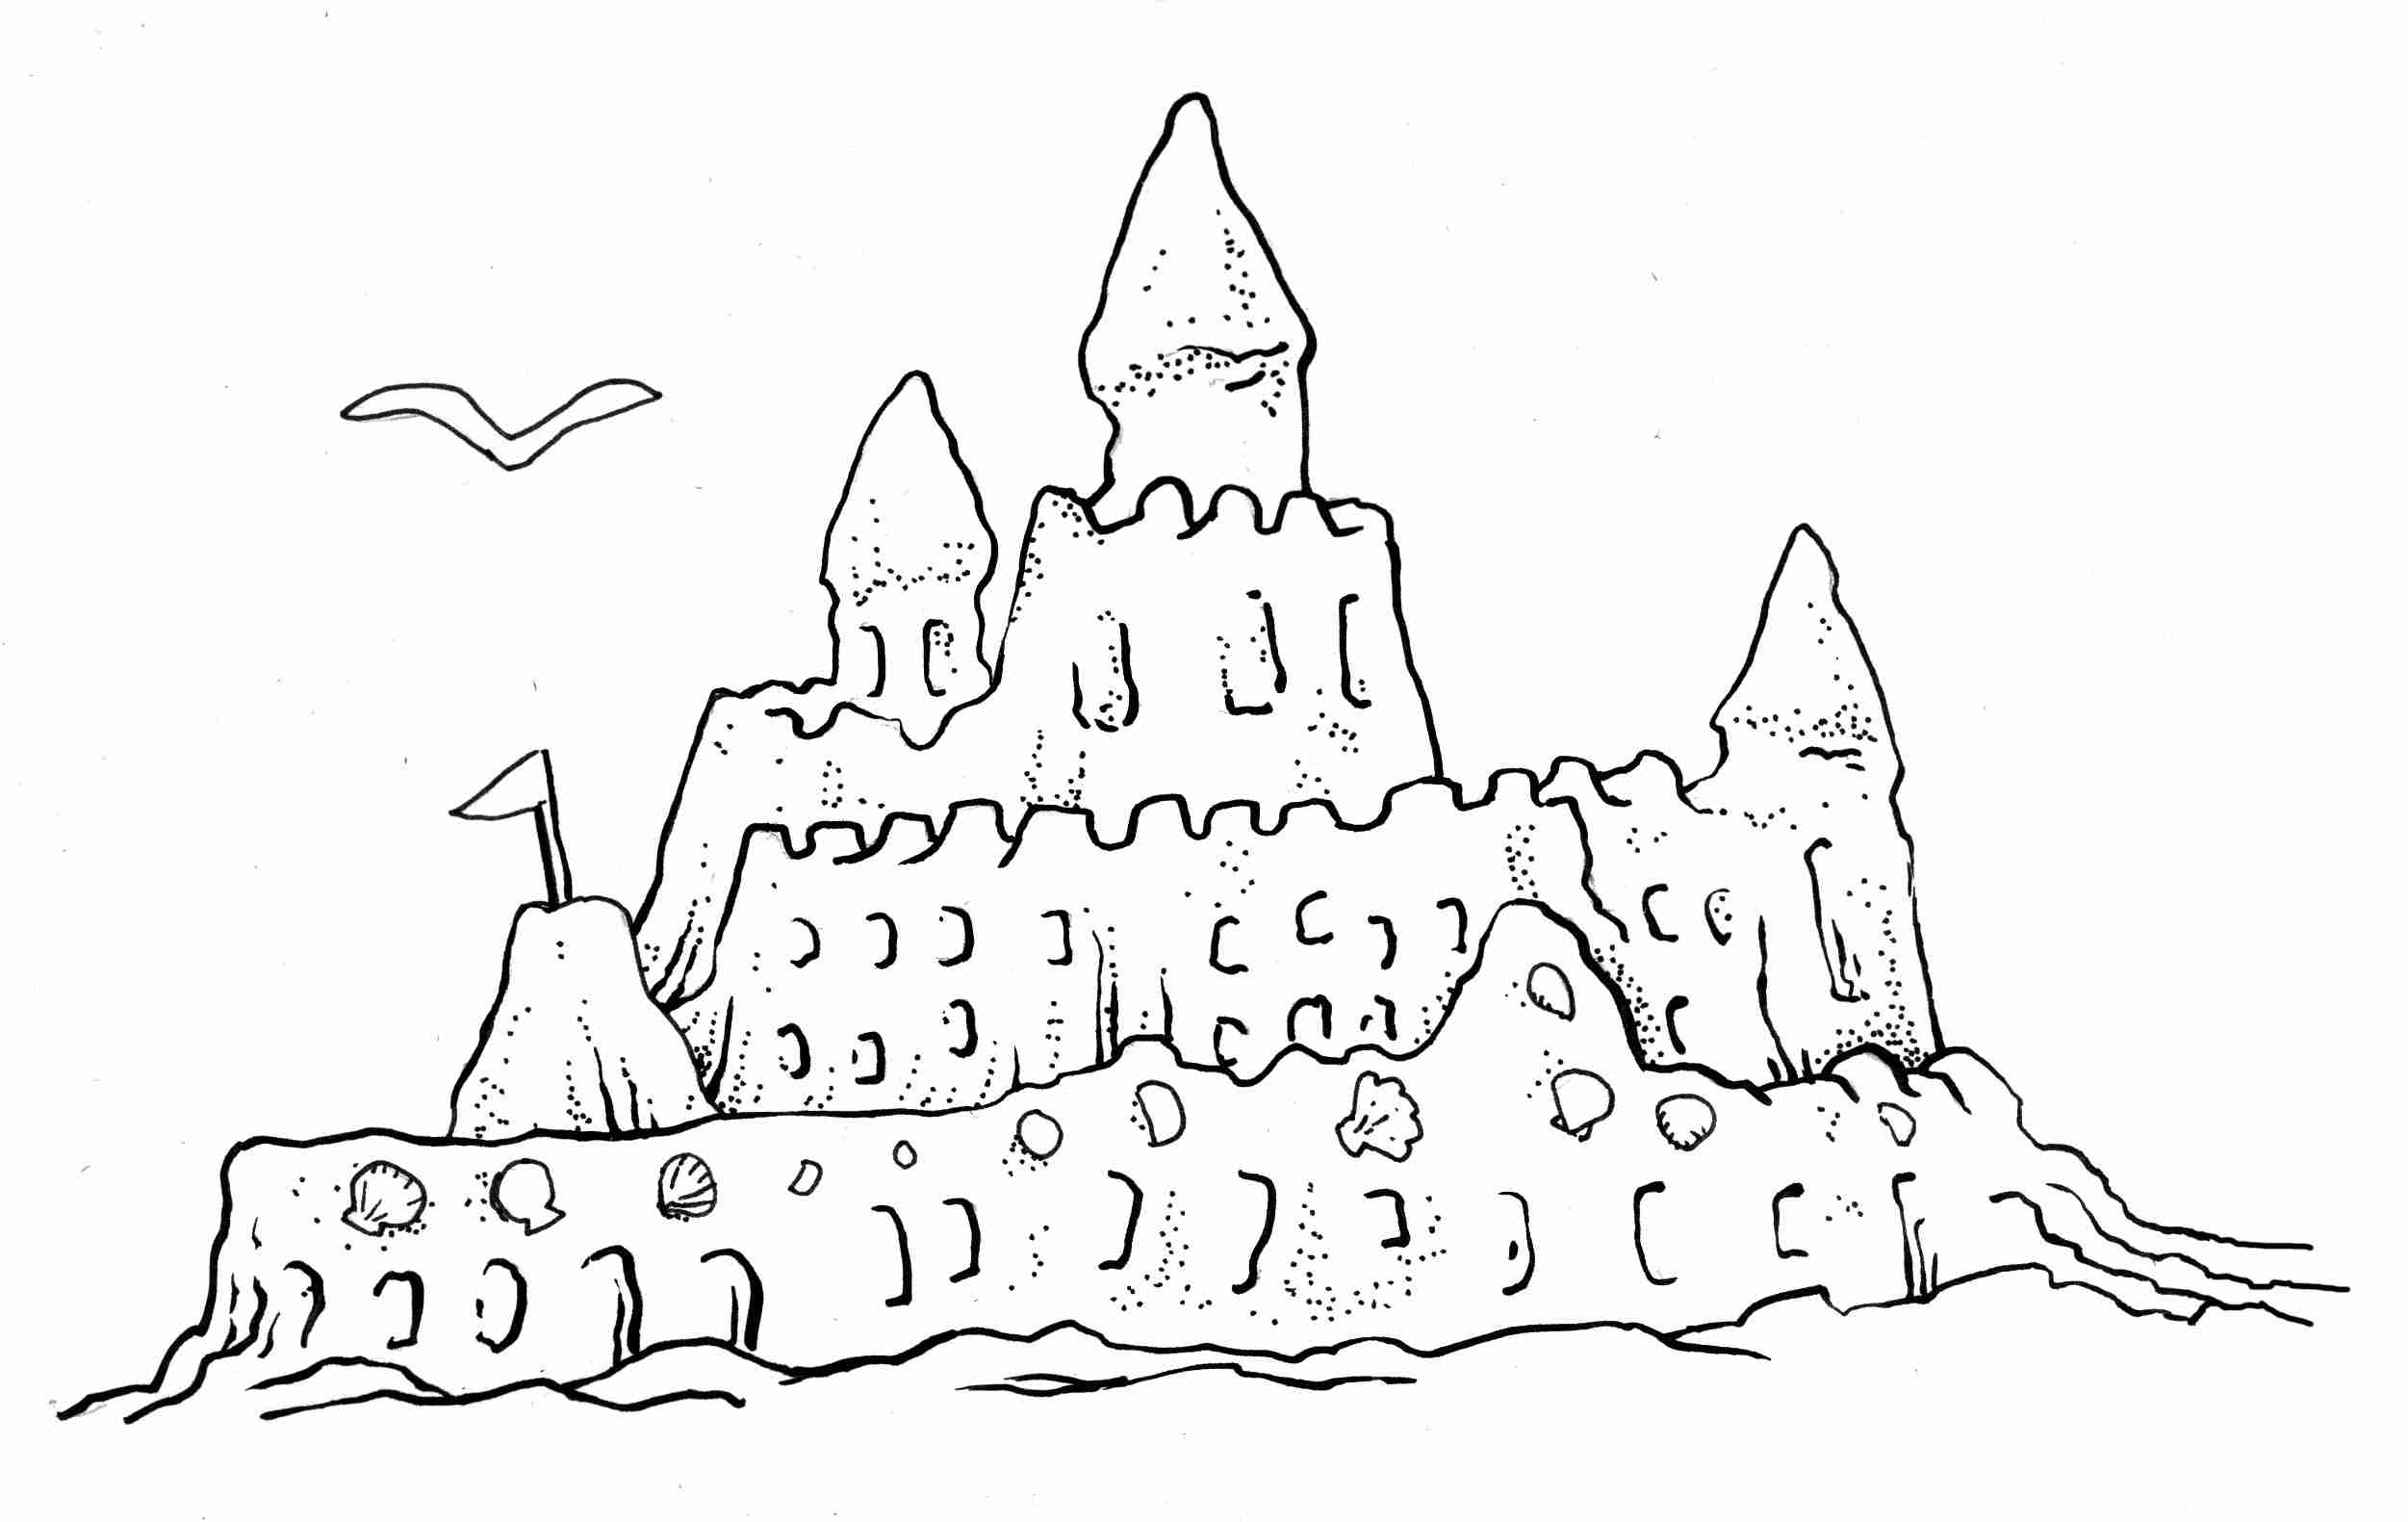 sand castle coloring kids sand castle adf6 coloring pages printable sand coloring castle